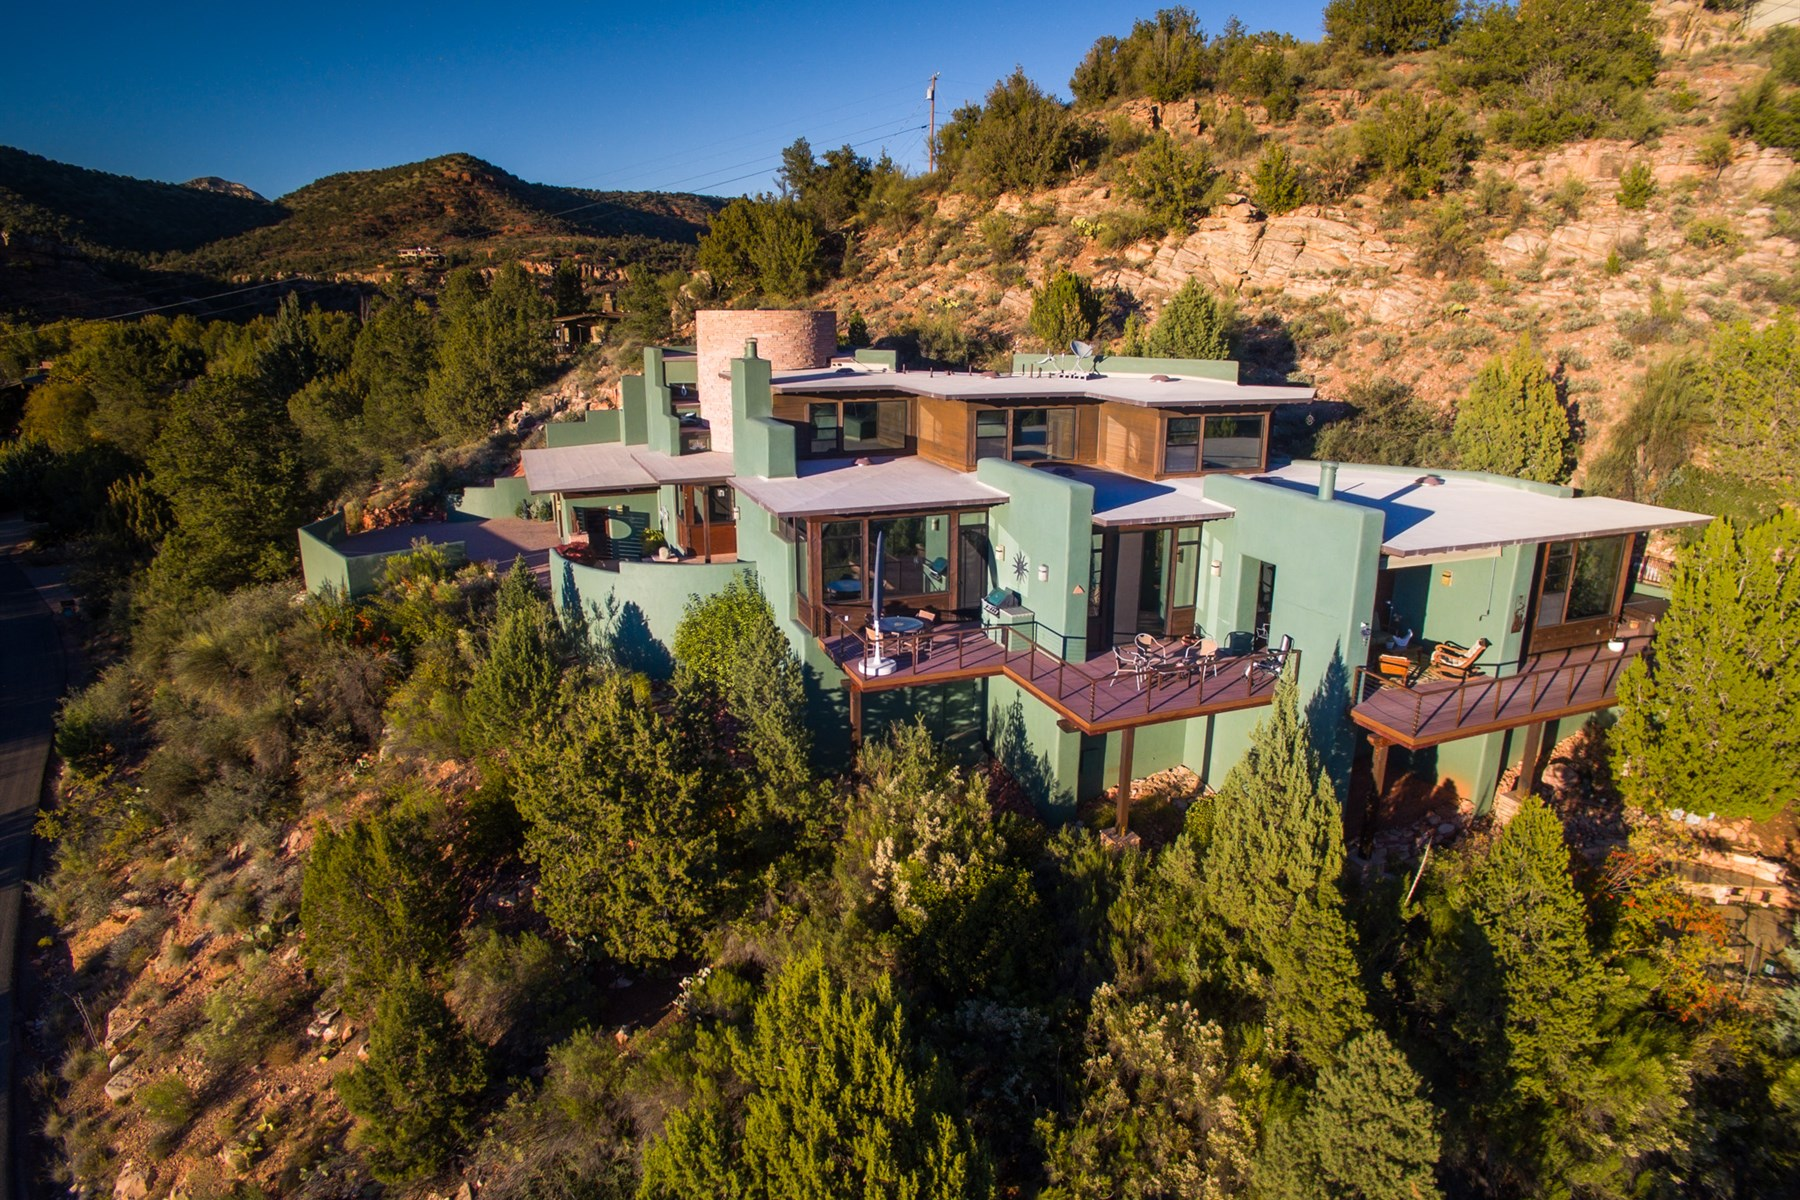 Casa Unifamiliar por un Venta en Embraced by peace and serenity at the base of Cathedral Rock 880 Back O Beyond Rd Sedona, Arizona, 86336 Estados Unidos